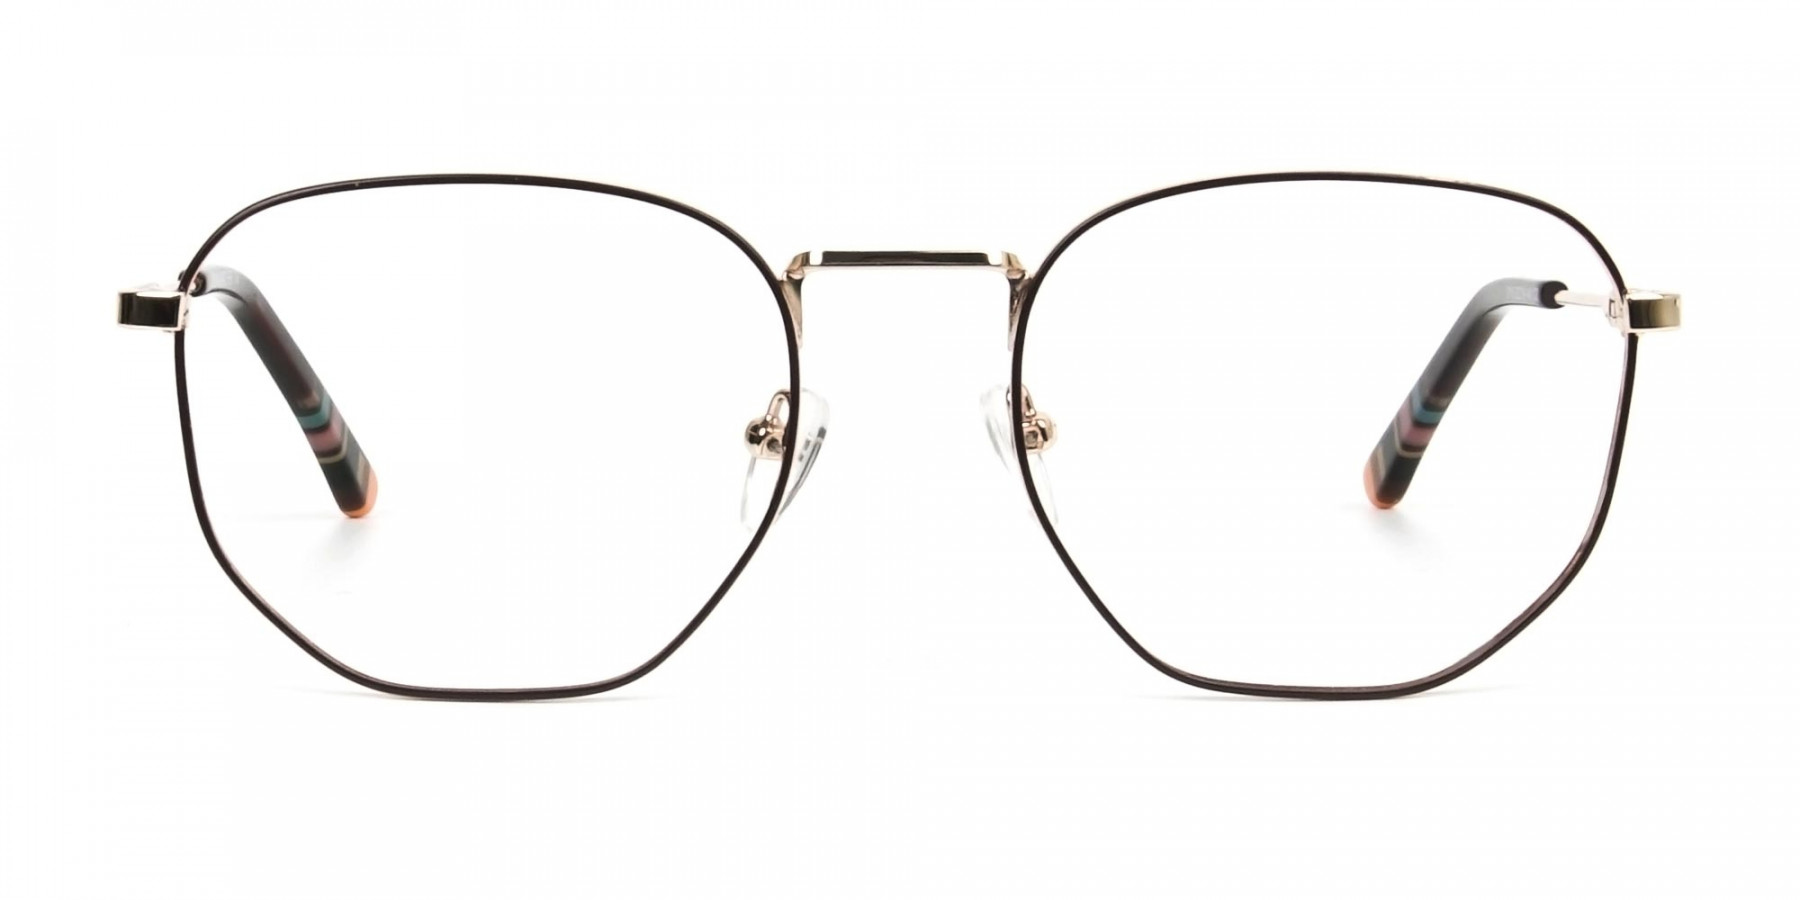 Geometric Brown & Gold Spectacles - 1